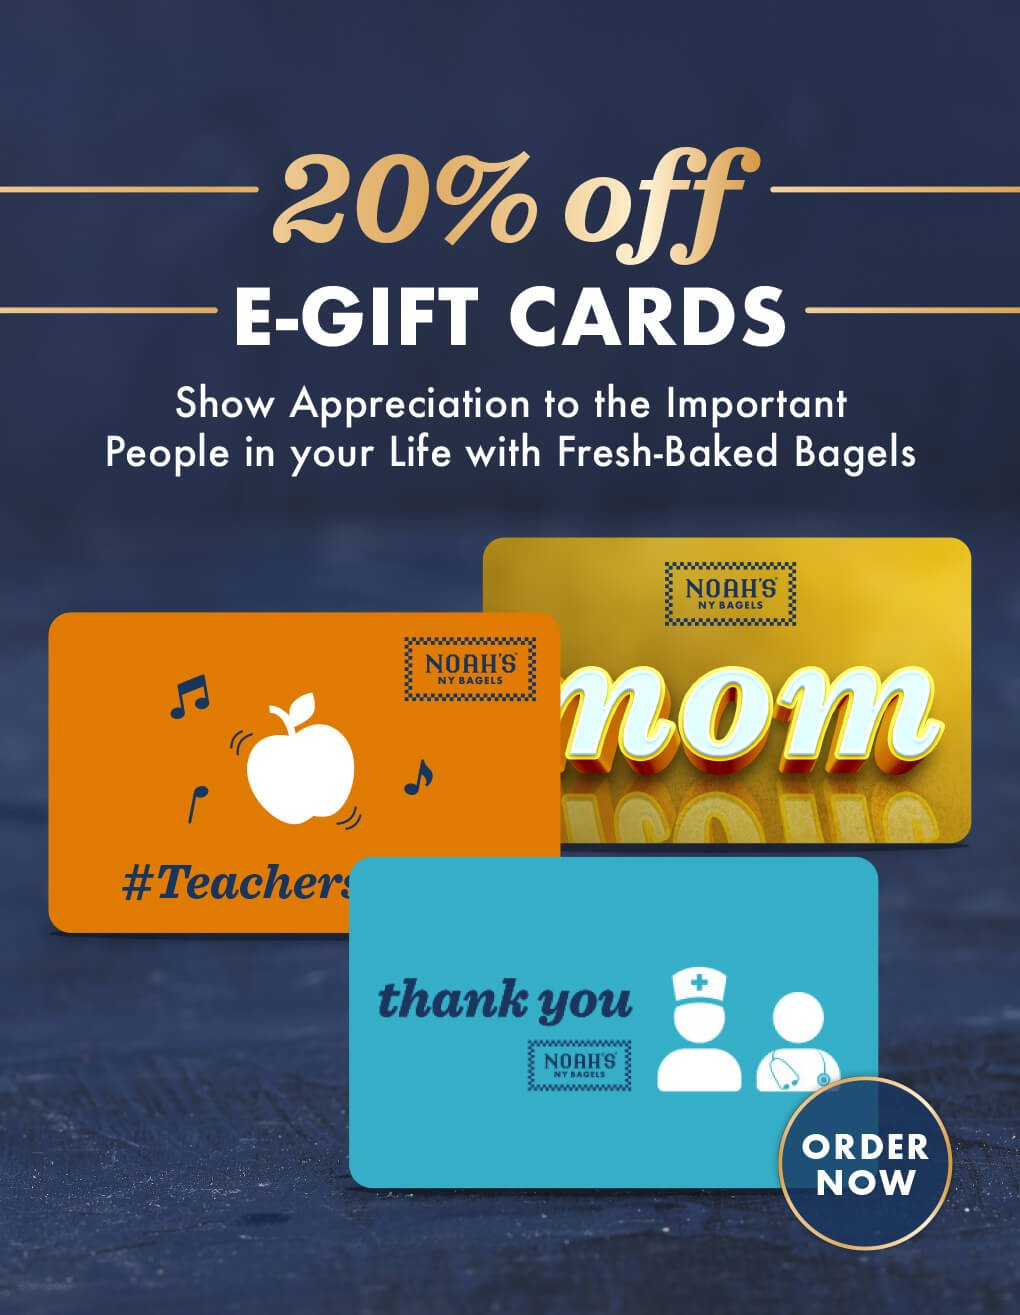 20% Off E-Gift Cards to Show Your Appreciation